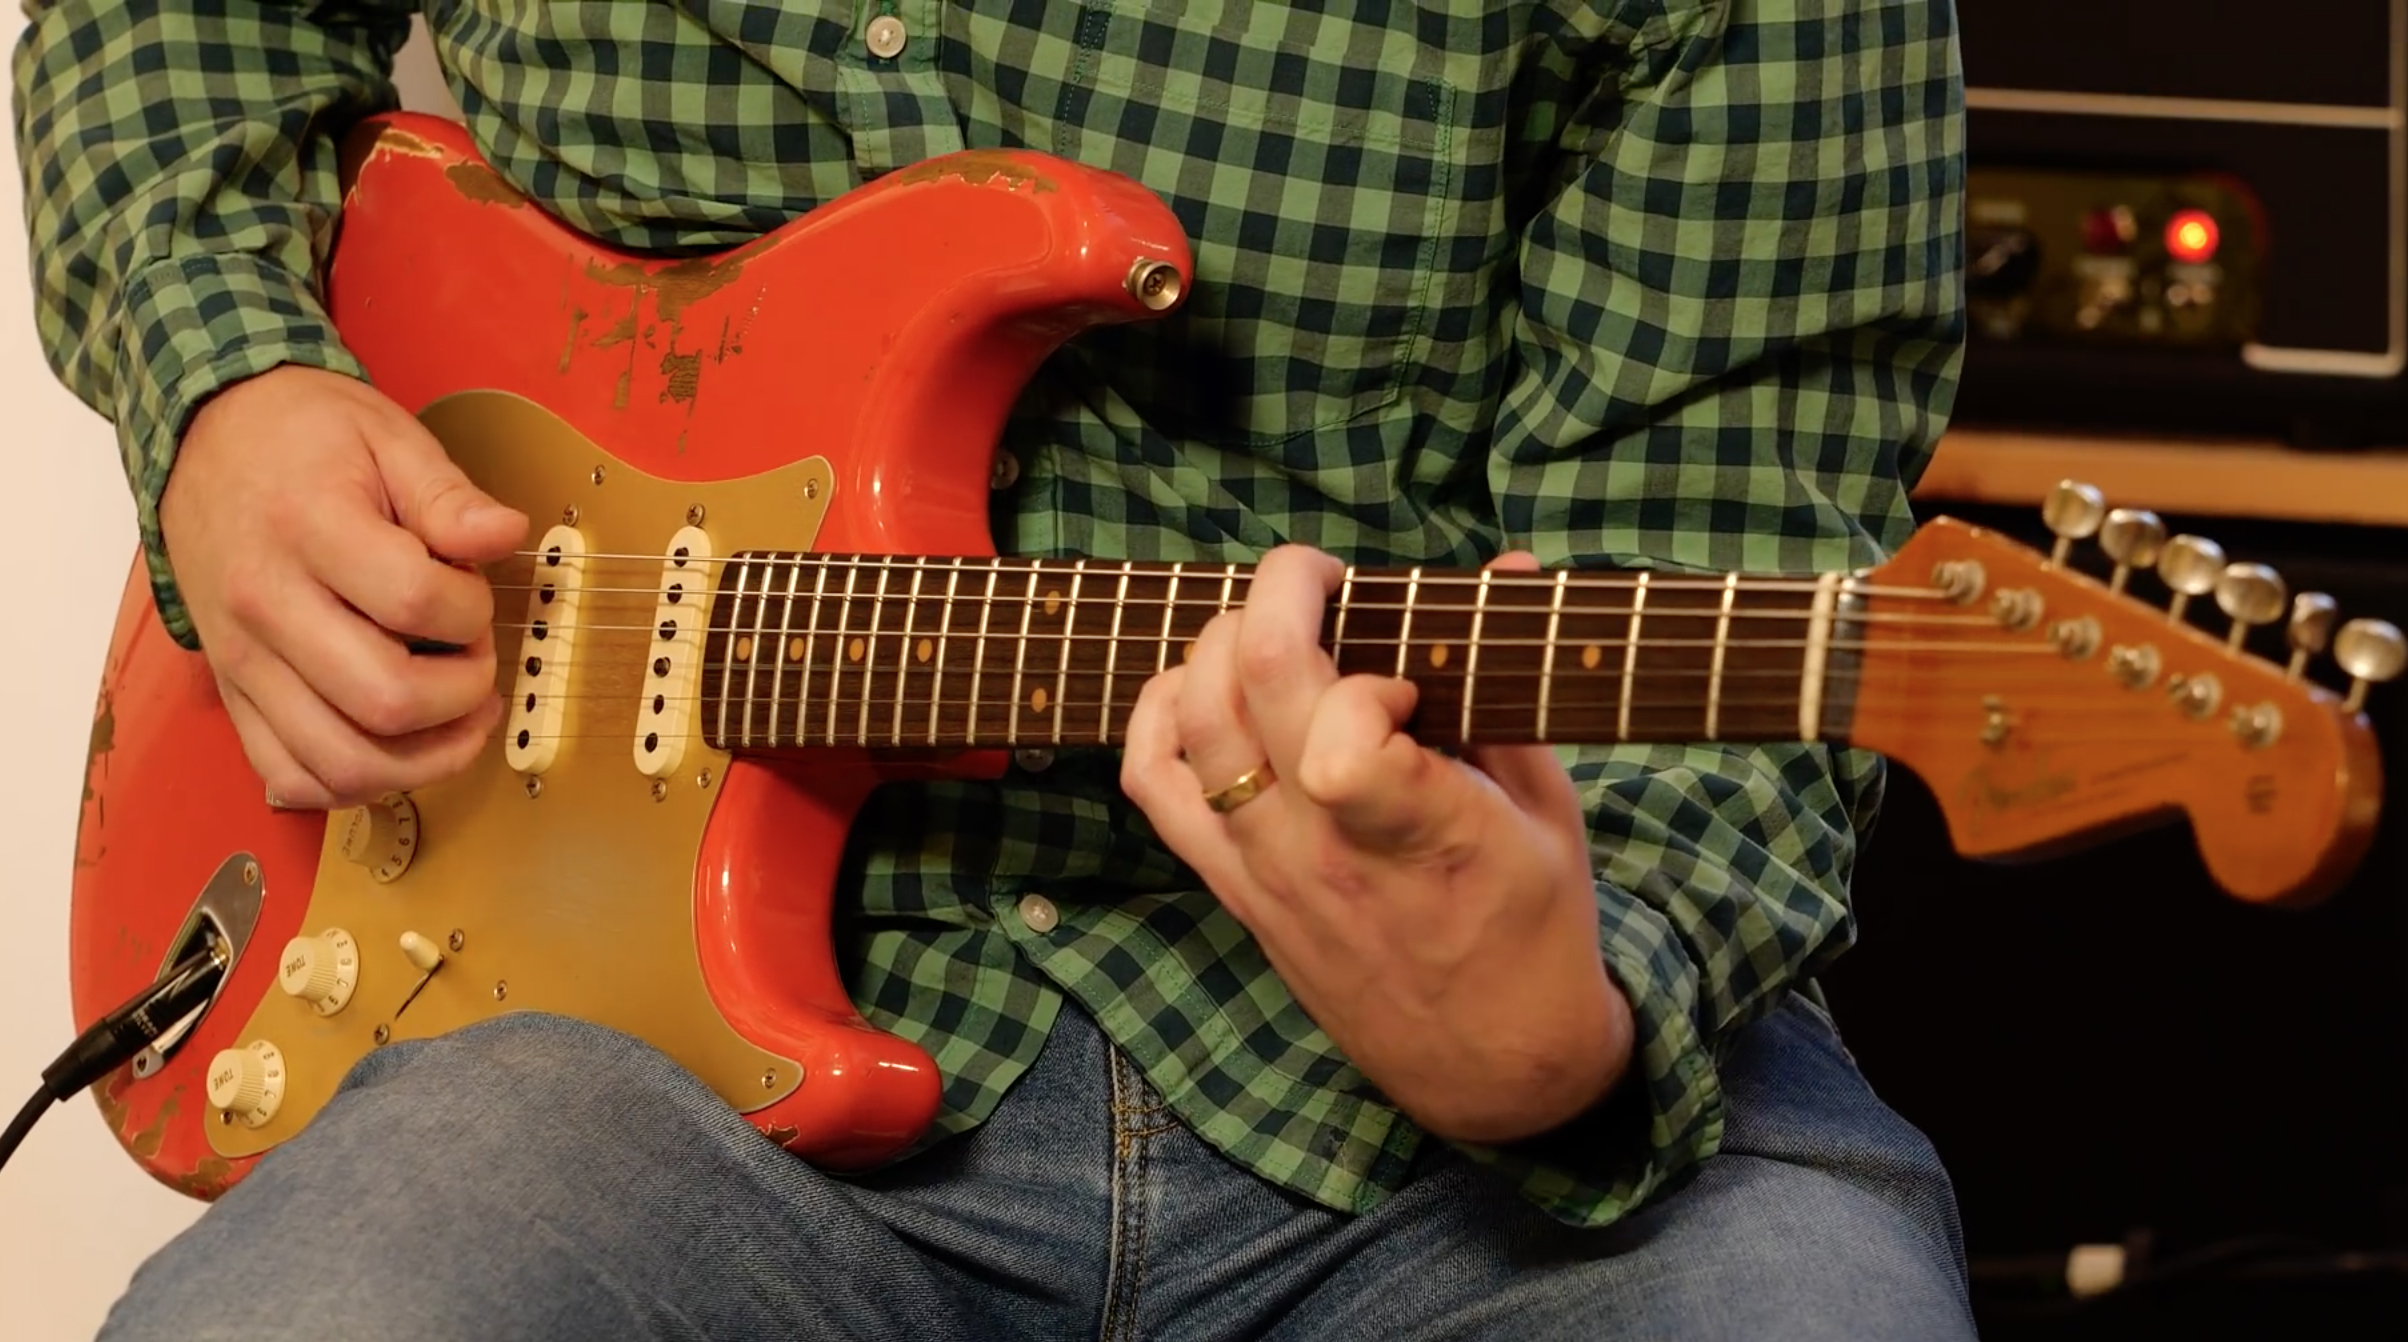 MUSIC THEORY - Concepts extracted directly from Berklee College of Music, presented in an interactive, effective, and fun way! From basic fundamentals to college-level concepts, you'll discover an entirely new world of guitar playing. Newcomers to music theory should follow the curriculum as it's laid out. More advanced players can browse through the various sections and lessons in order to fill in any gaps that may exist in their knowledge.